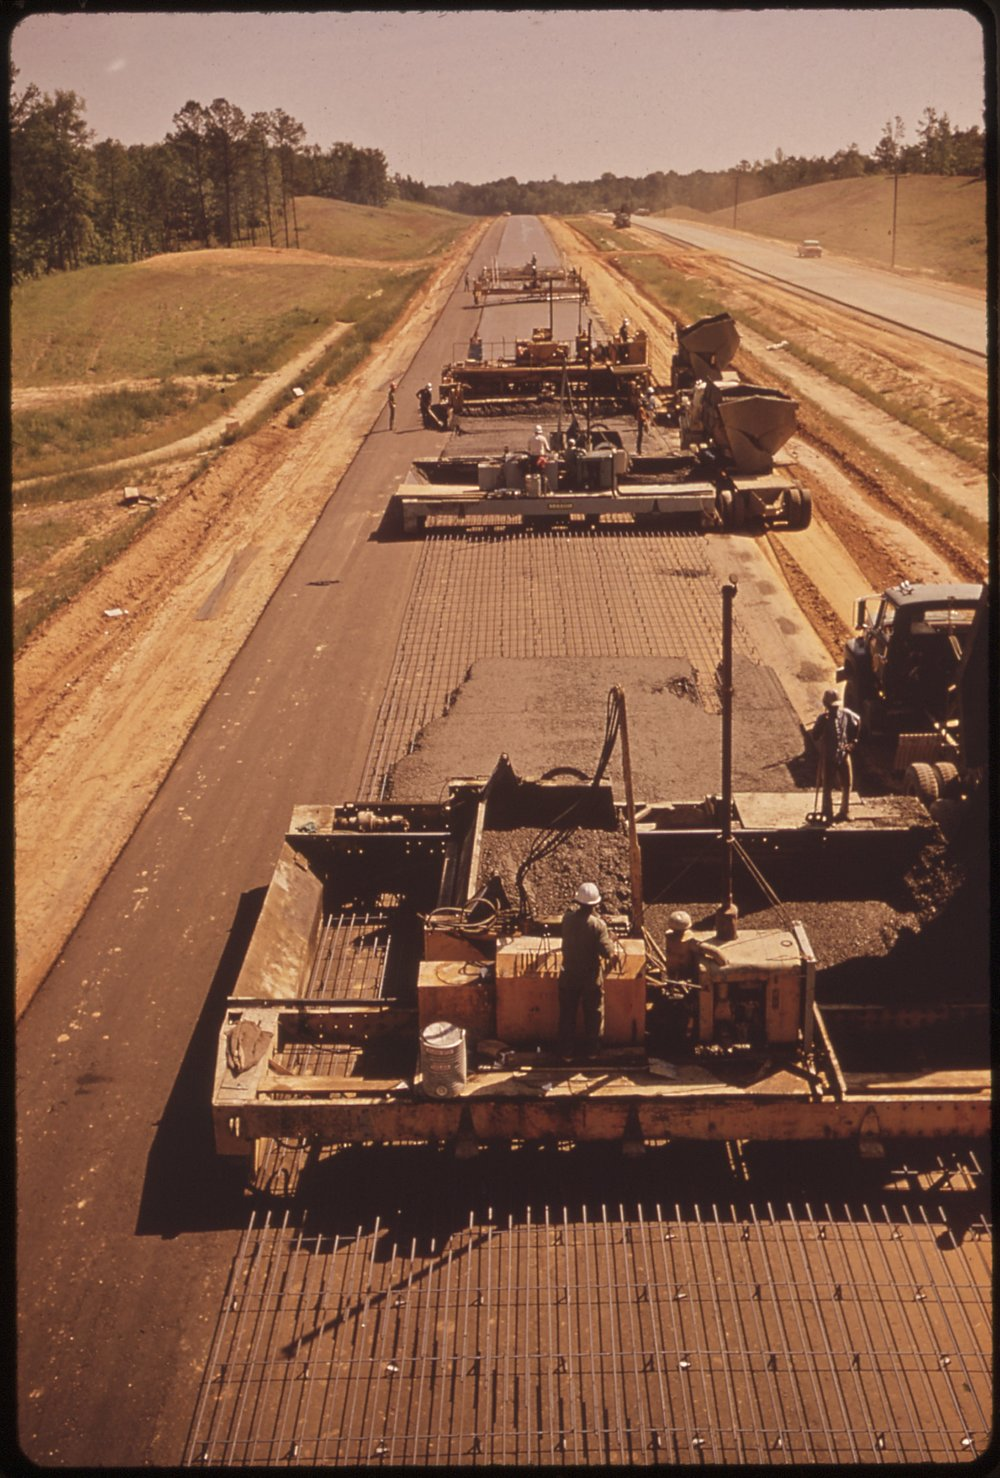 Construction on I-55 in 1972